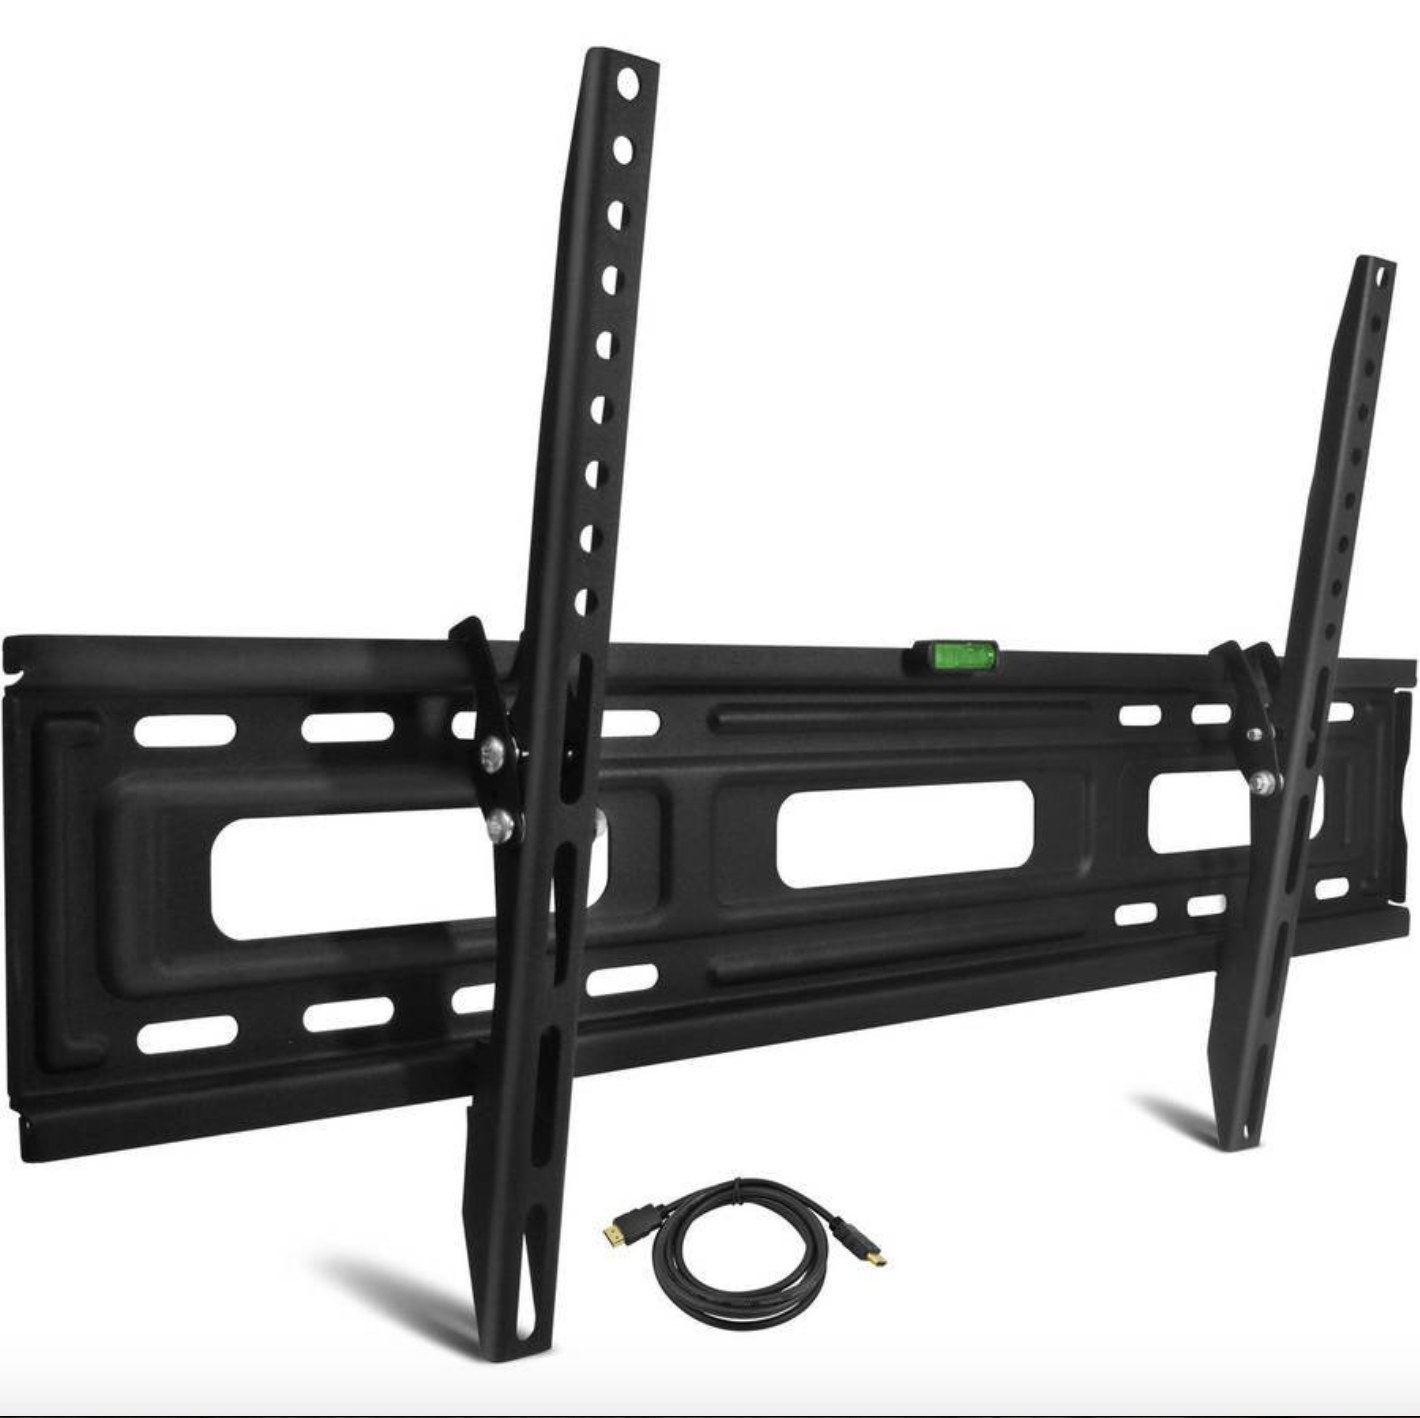 The tilting TV mount in black